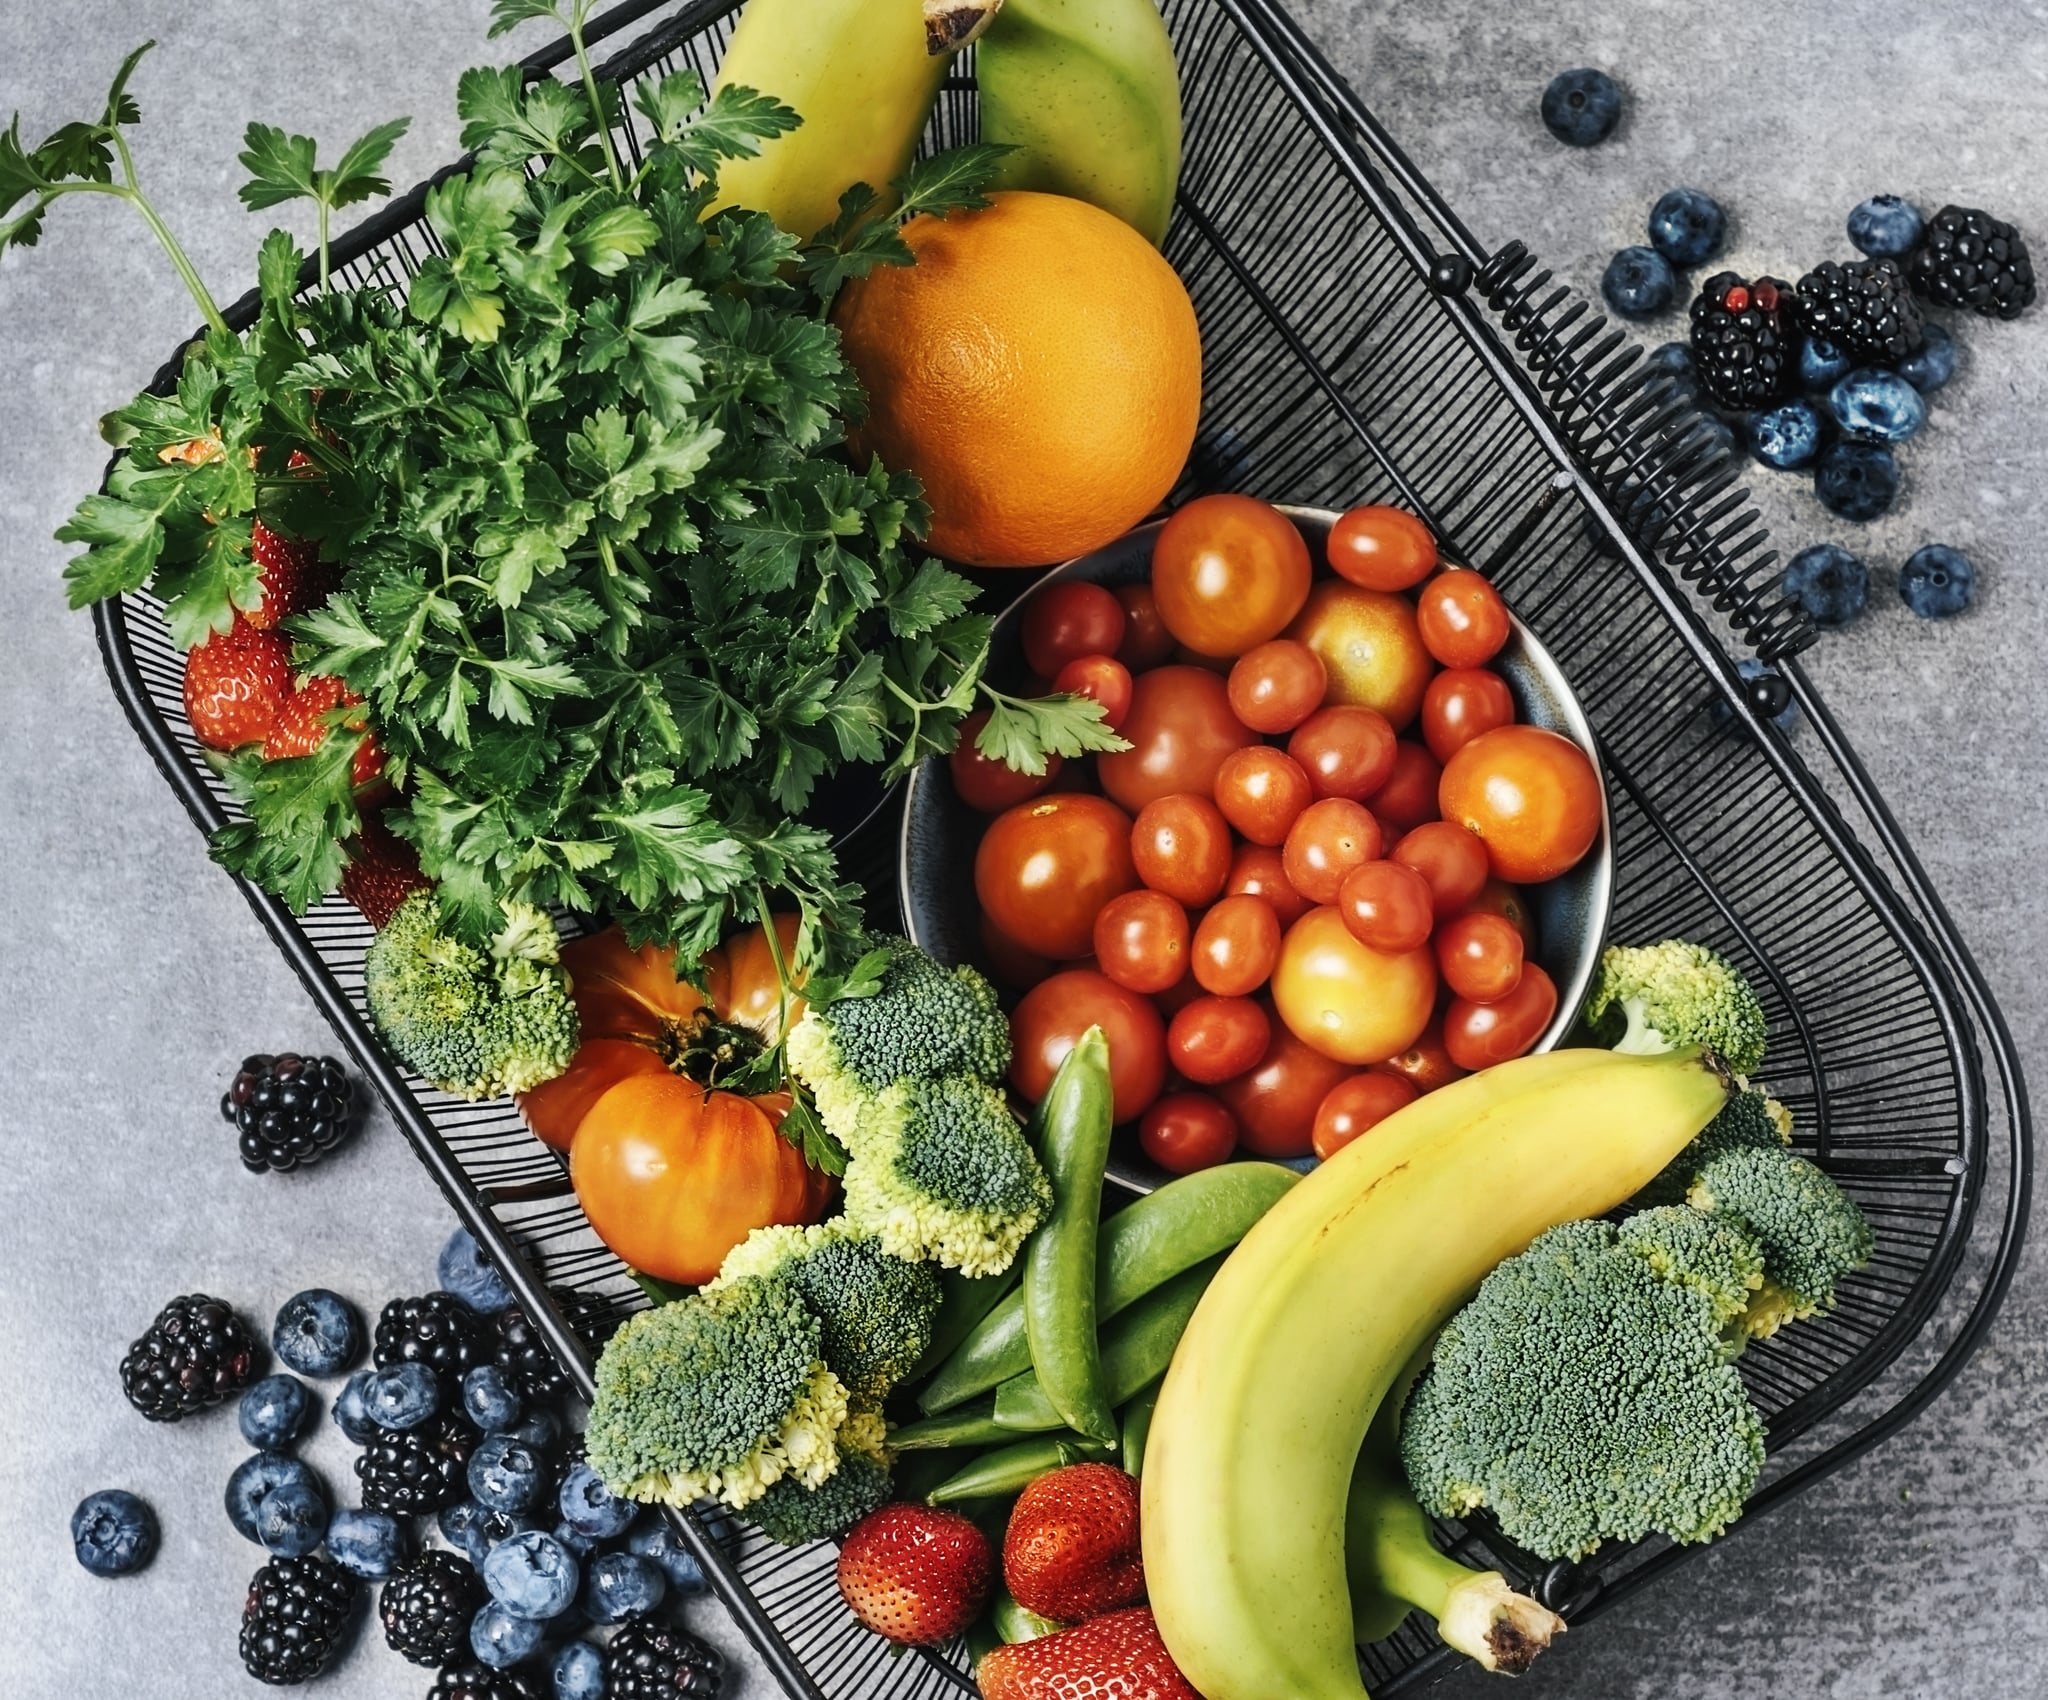 A basket of fresh vegetables, and fruits on grey background